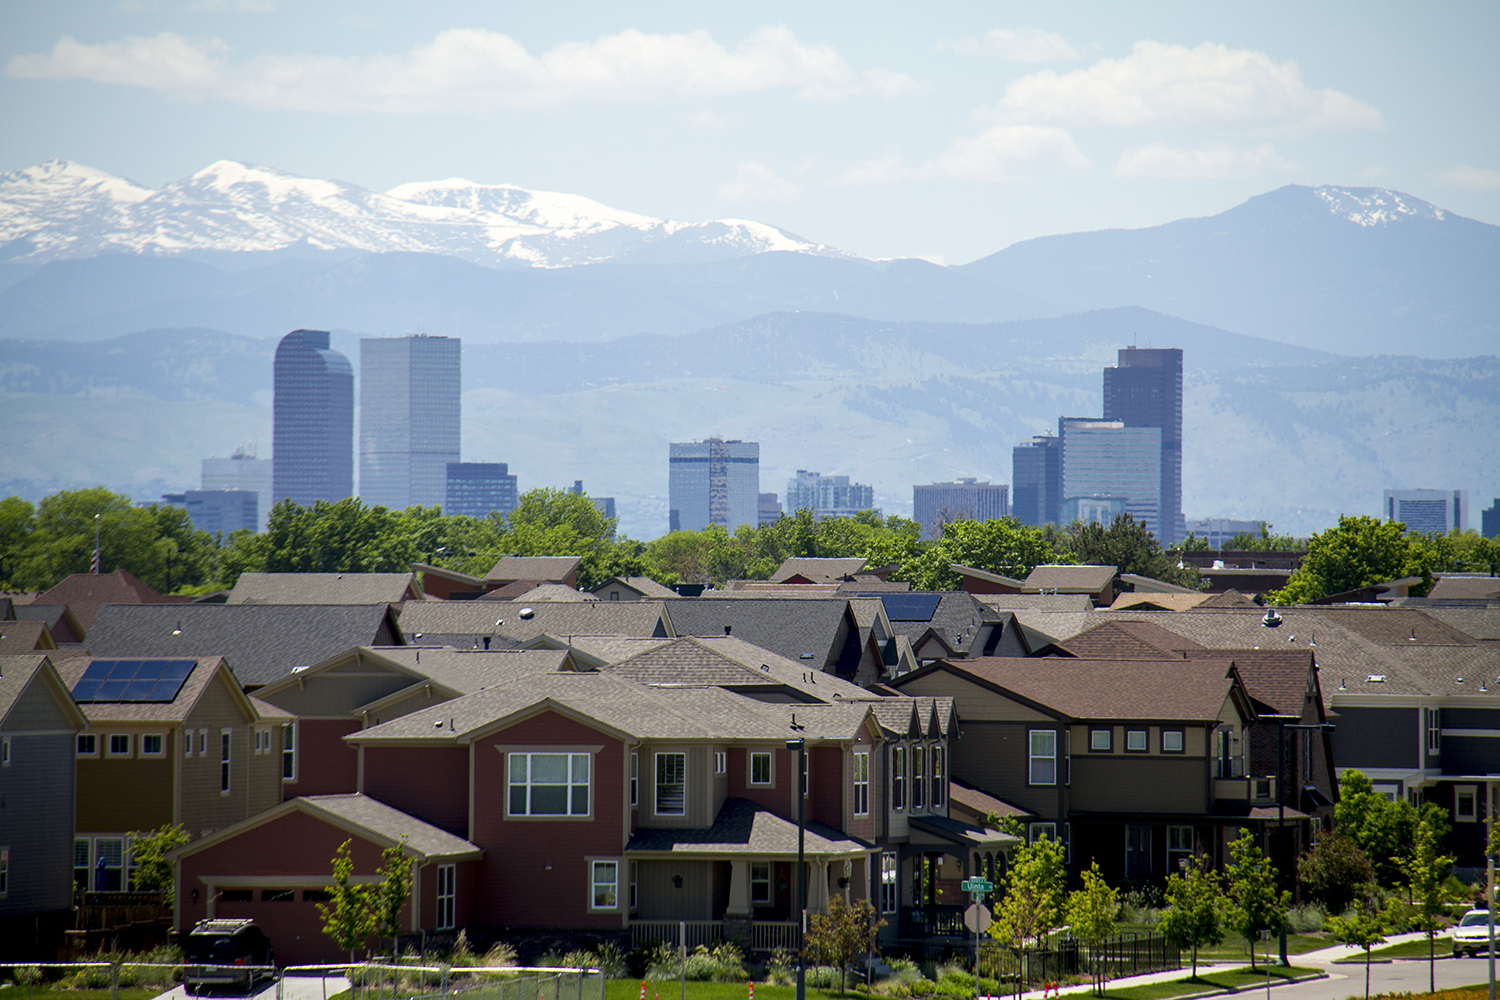 Stapleton residences under downtown Denver's skyline. (Kevin J. Beaty/Denverite)